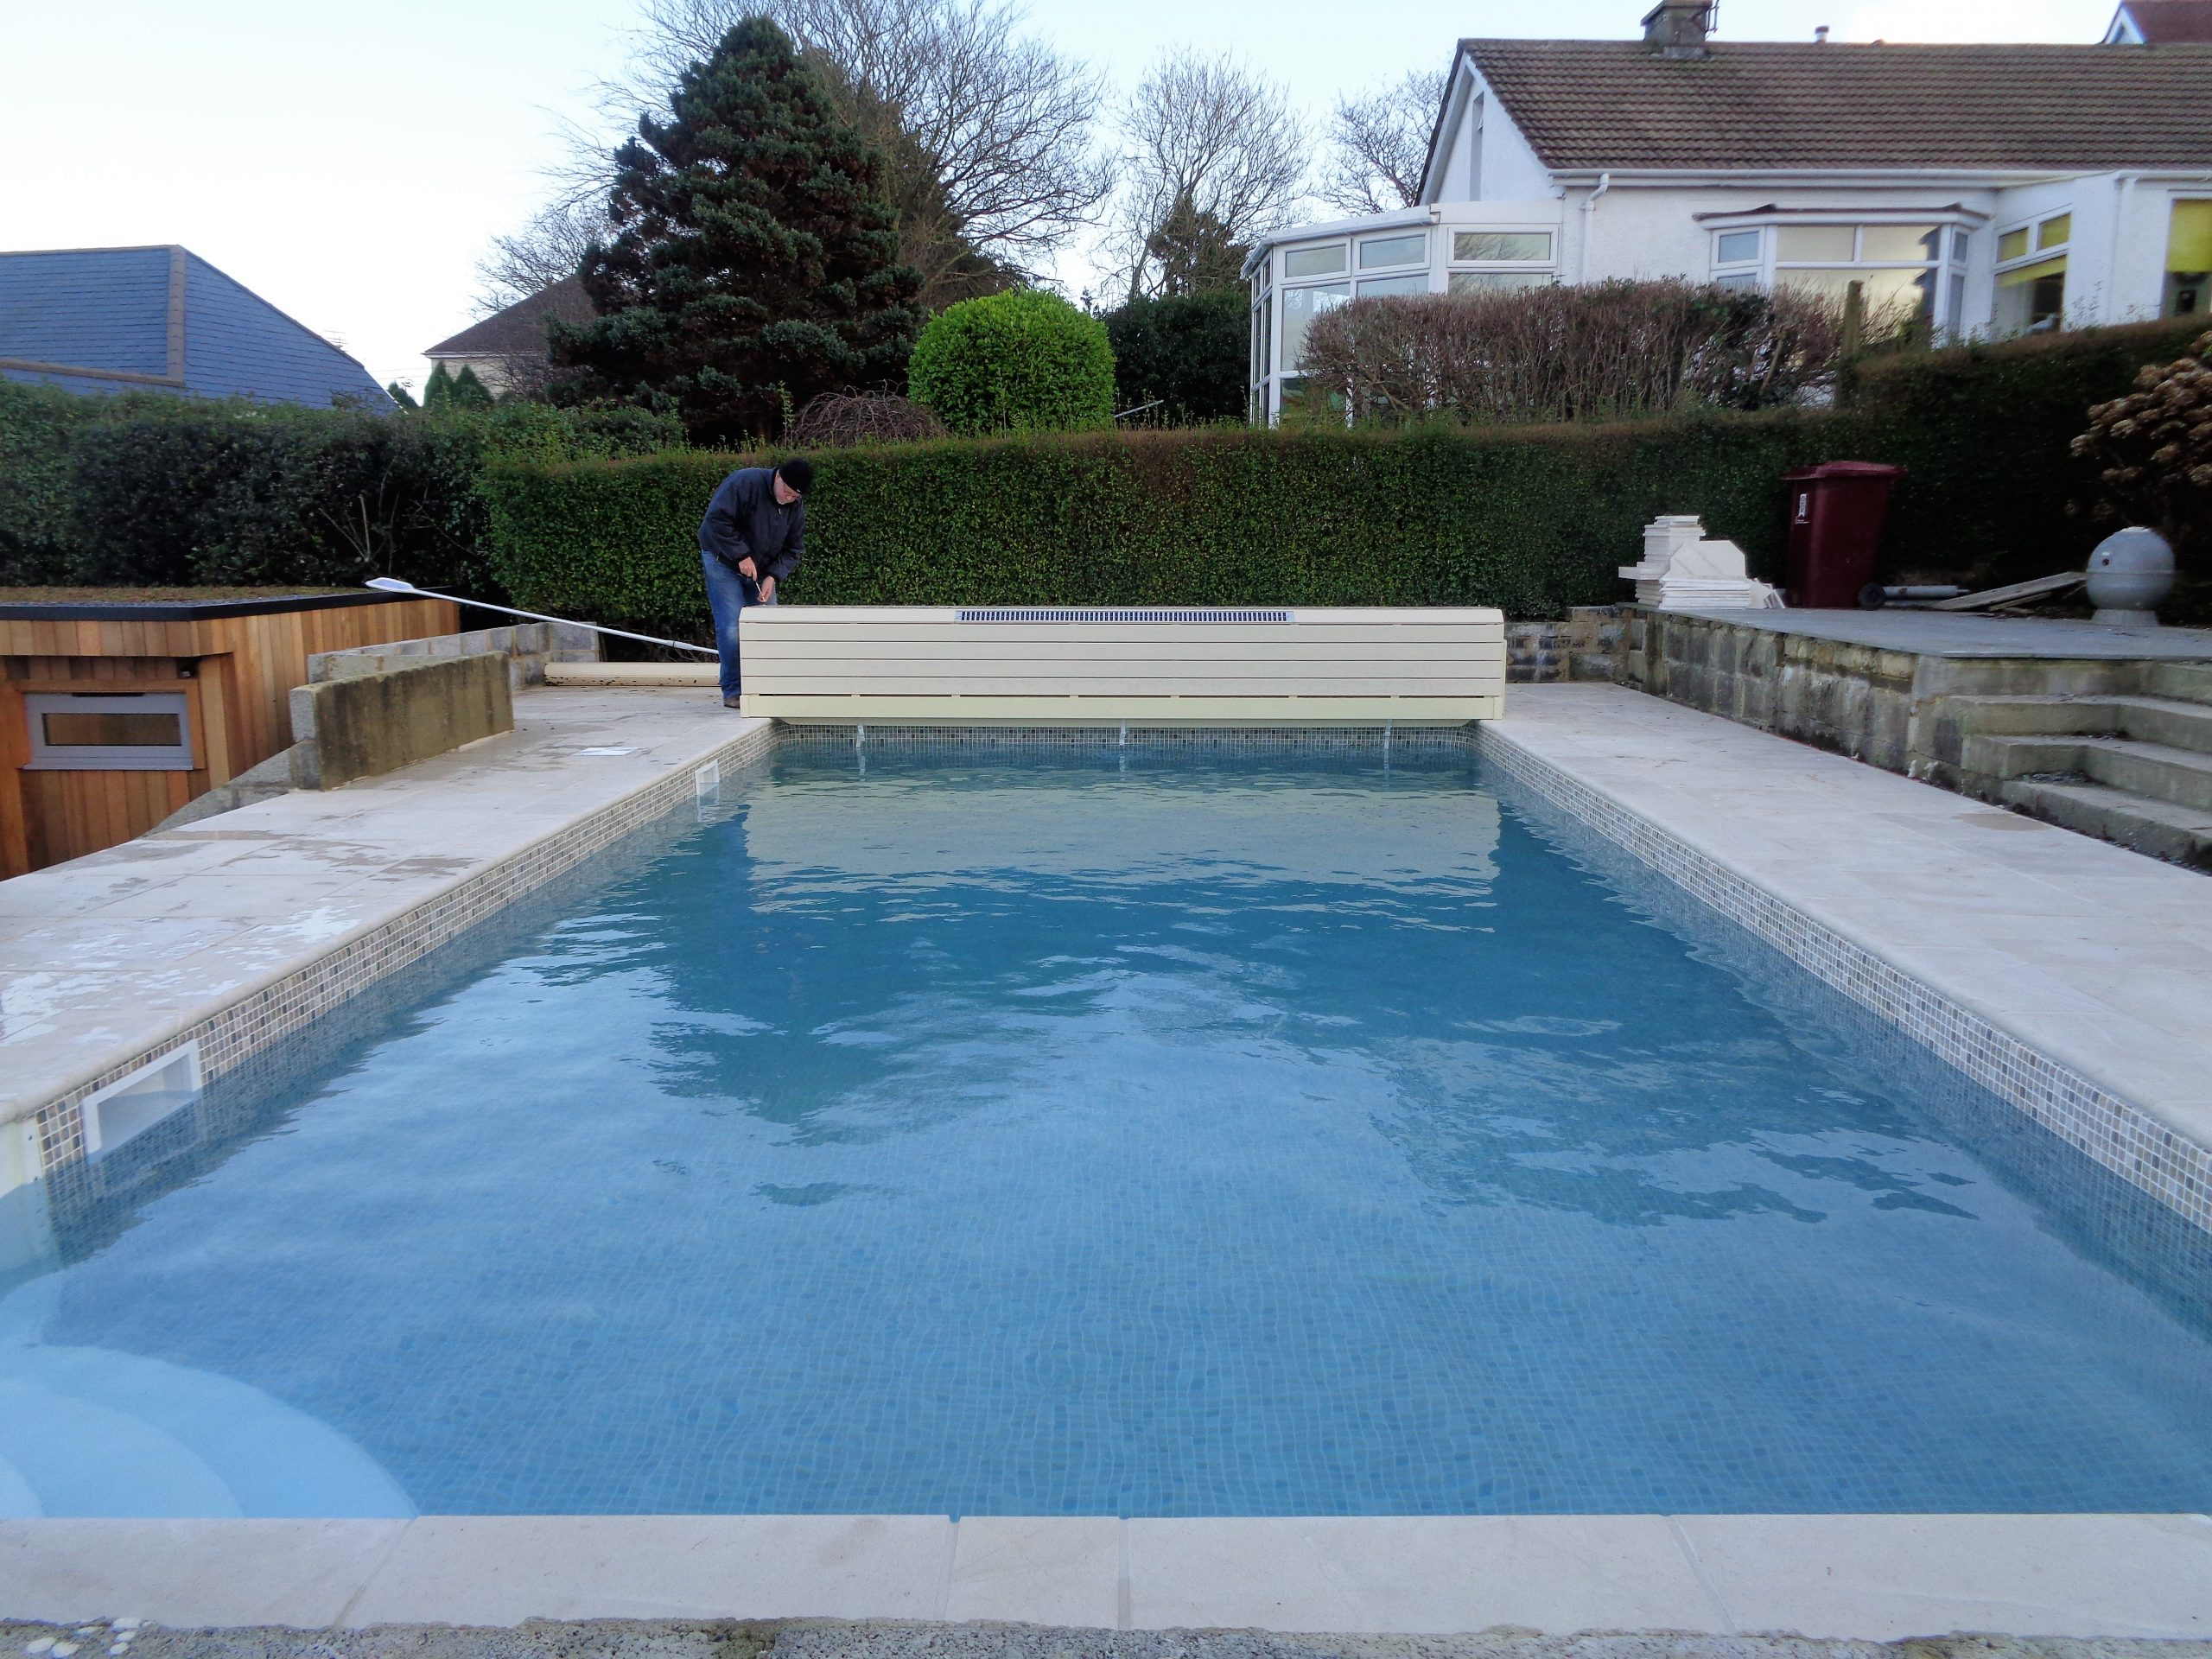 projects - Refurbishment swimming pools